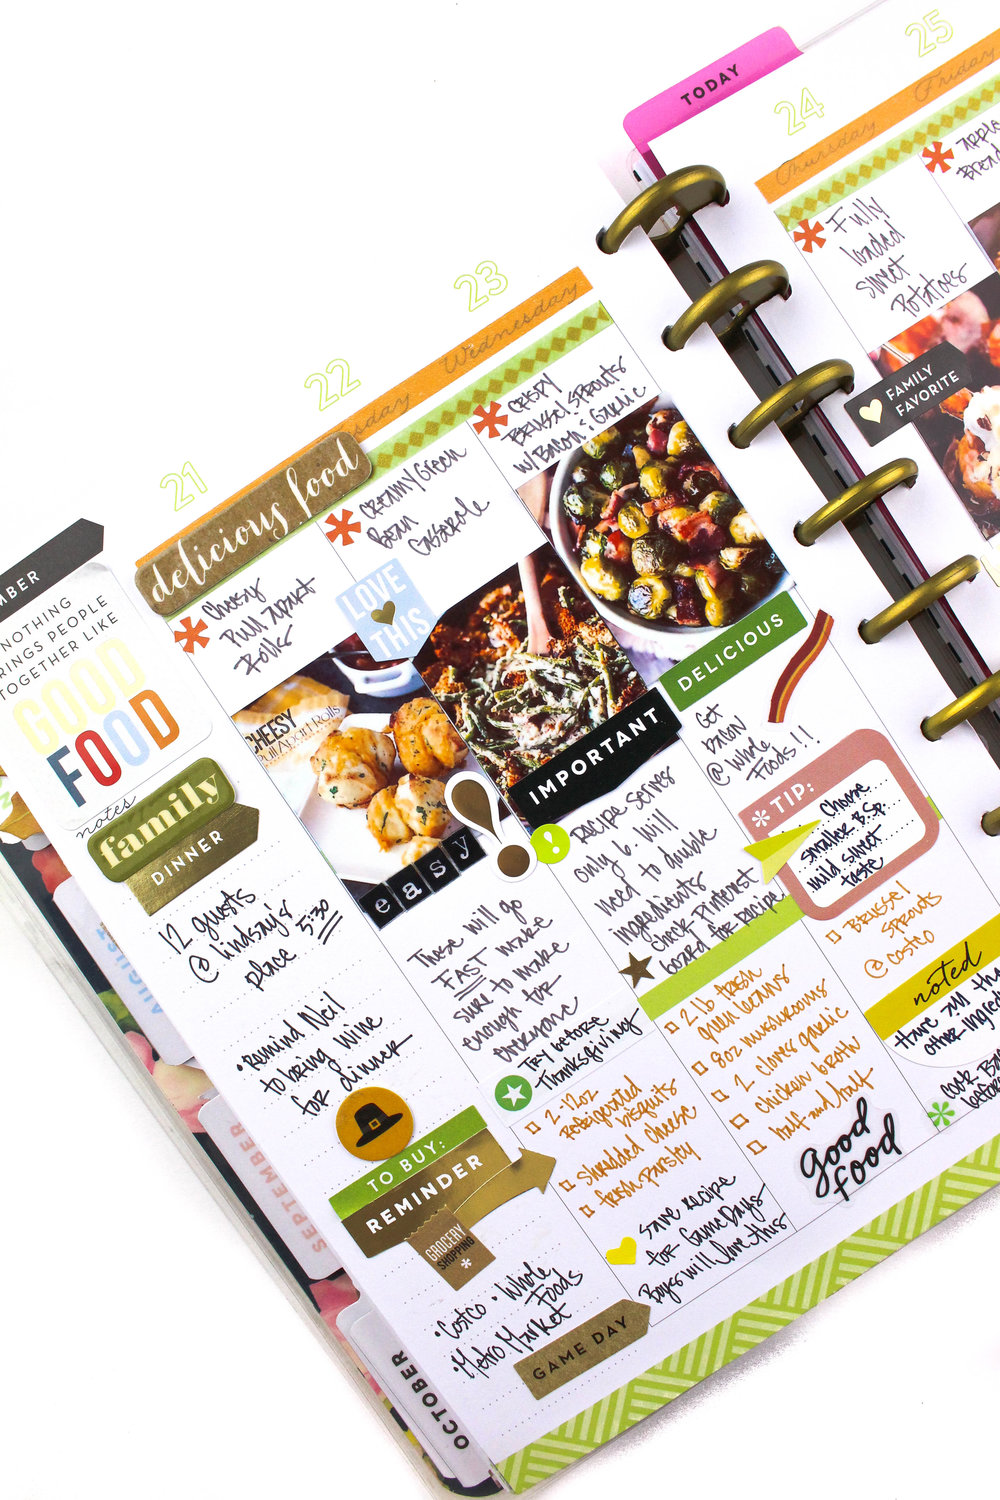 Thanksigving menu layout w/ matching weekly MINI spread by mambi Design Team member Tiffany Ross | me & my BIG ideas